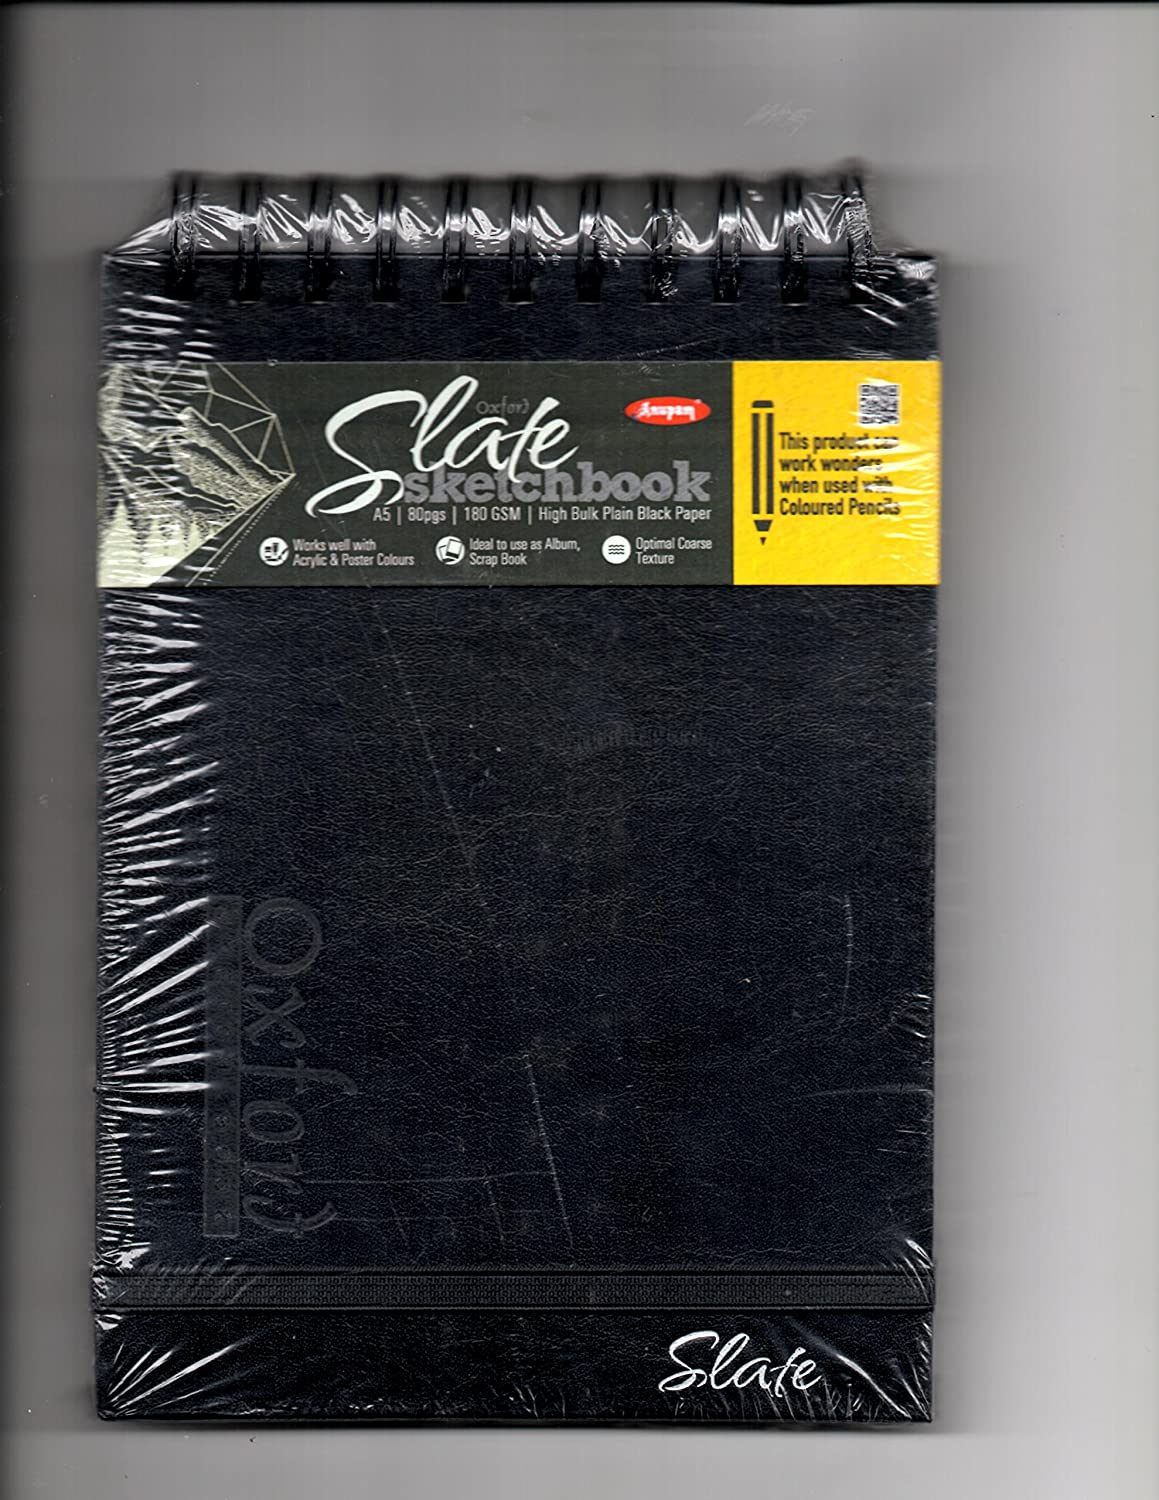 ANUPAM Oxford A5 Black Pages Sketch Book 80 Pages, 180 GSM